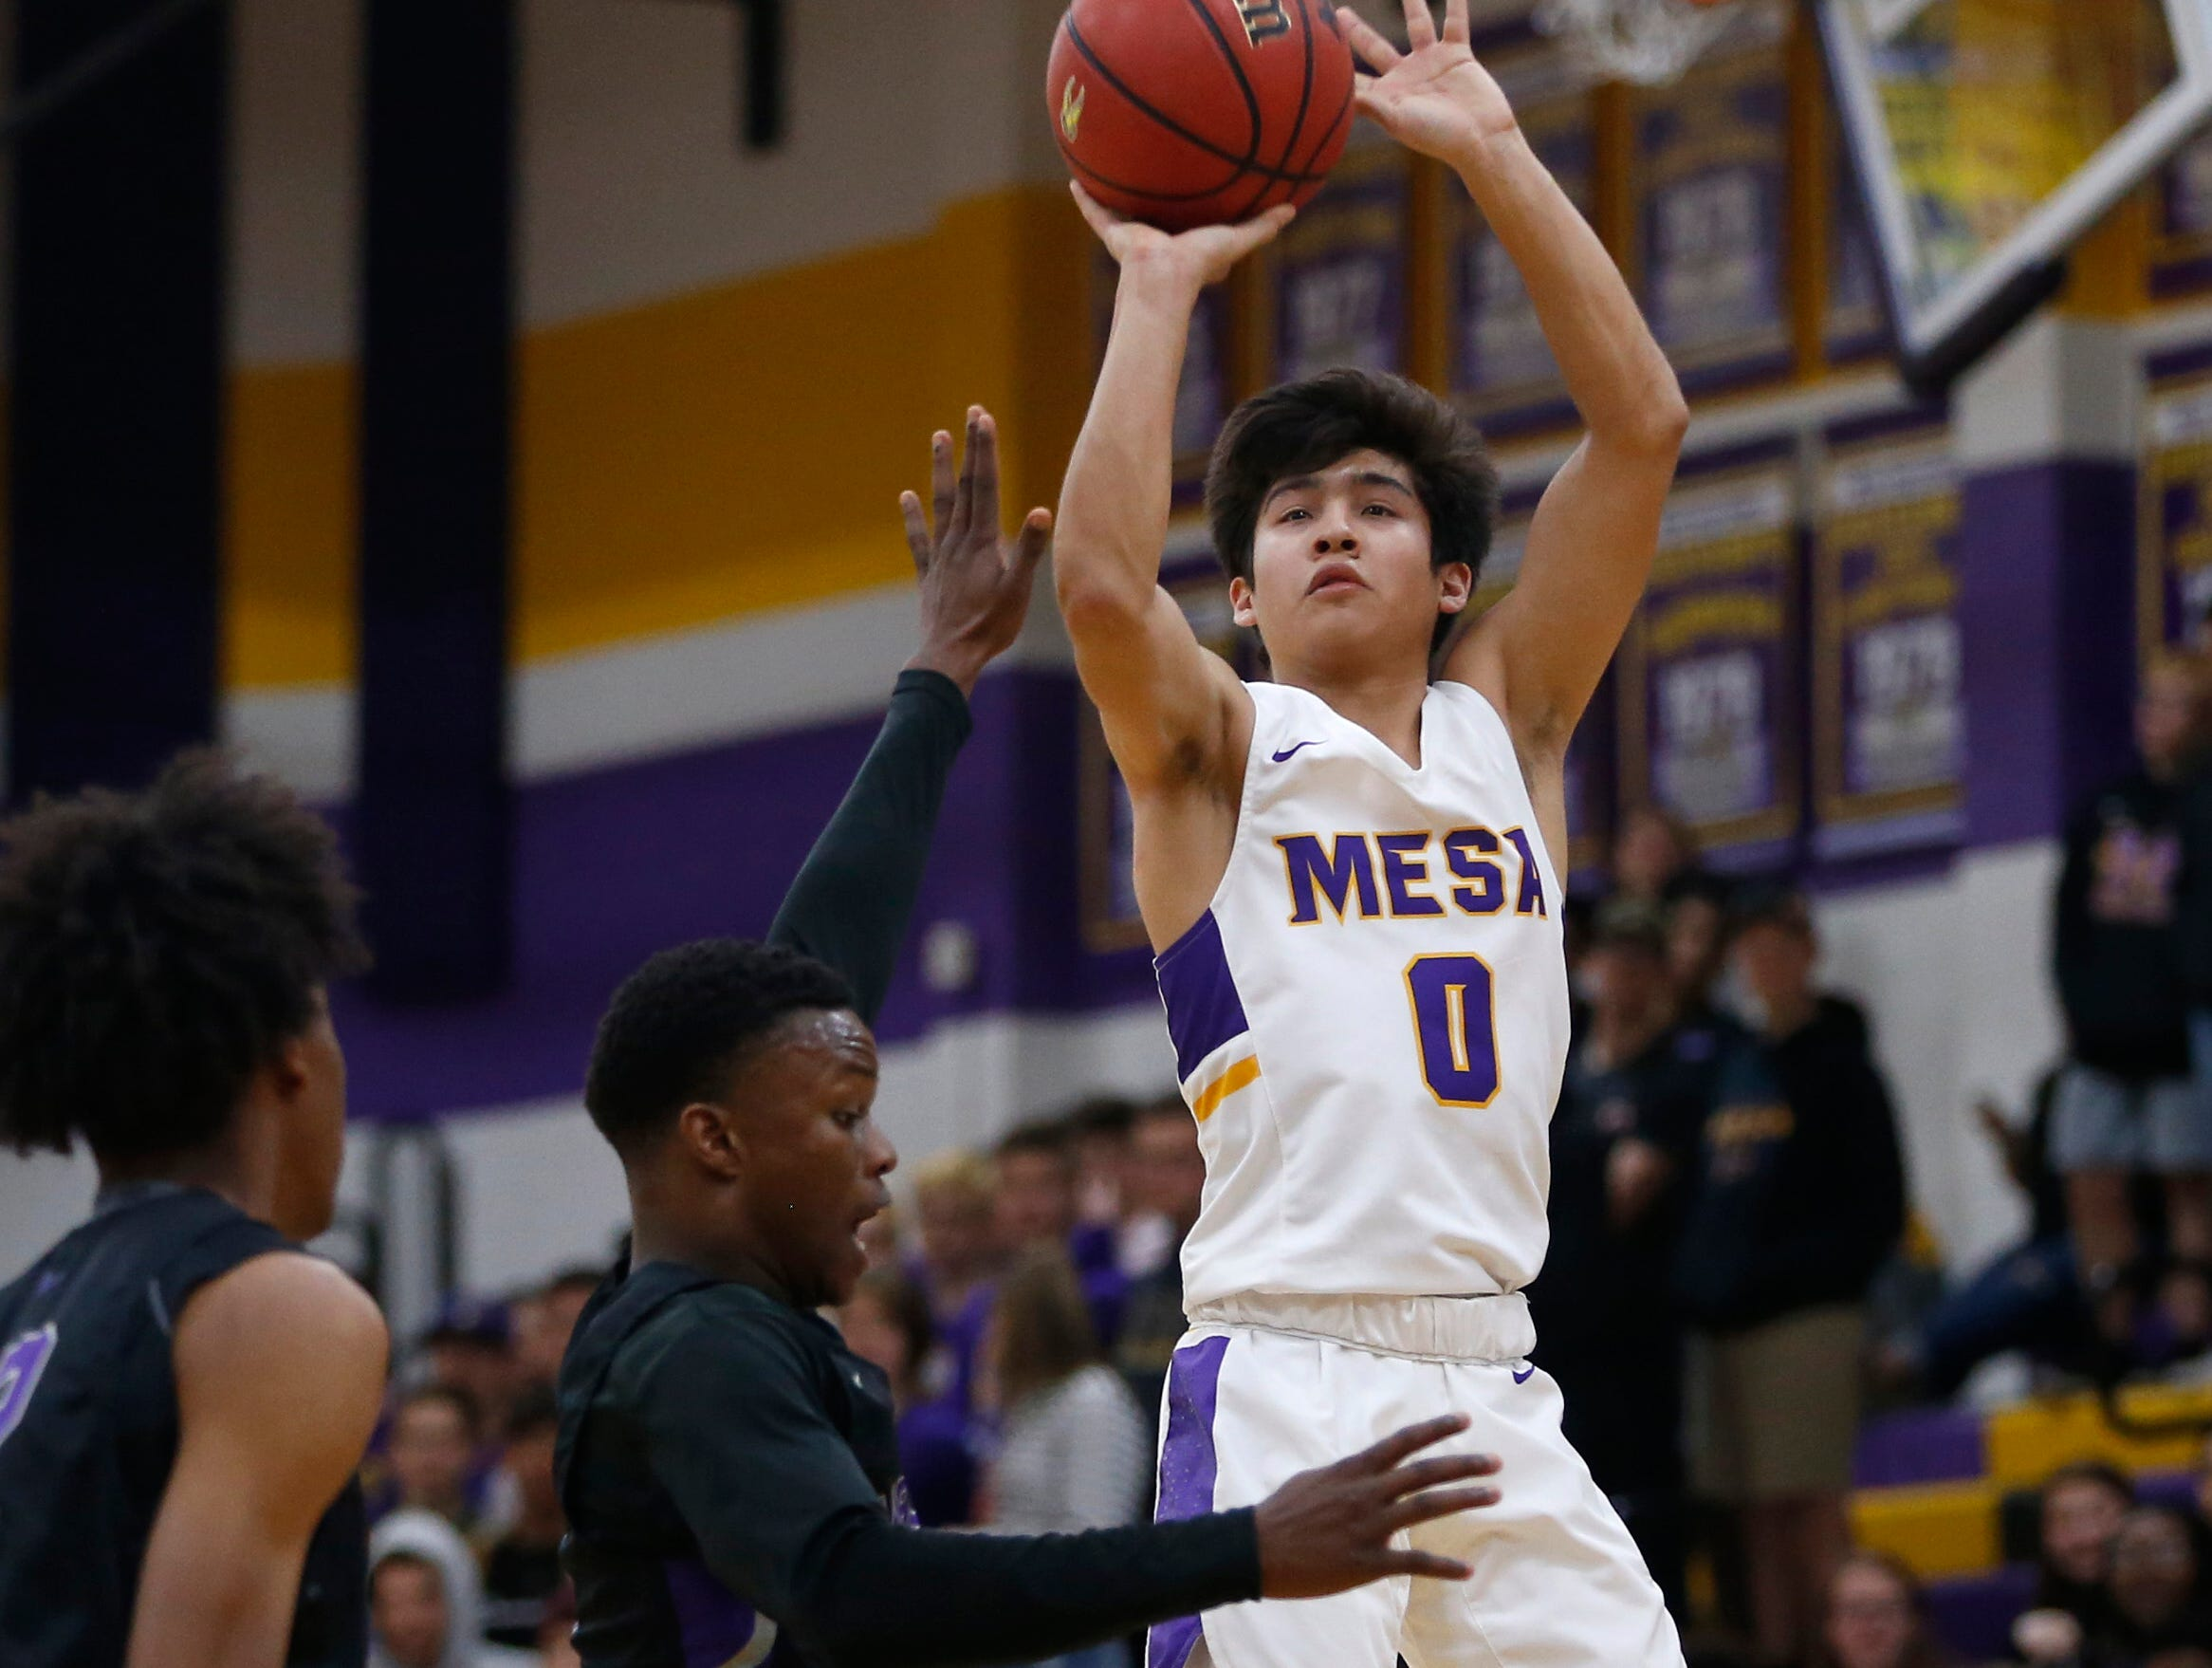 Mesa's Tony Adame (0) shoots against Valley Vista's Sidney Thomas (1) during the first half of the boys basketball tournament play-in game at Mesa High School in Mesa, Ariz. on February 8, 2019.